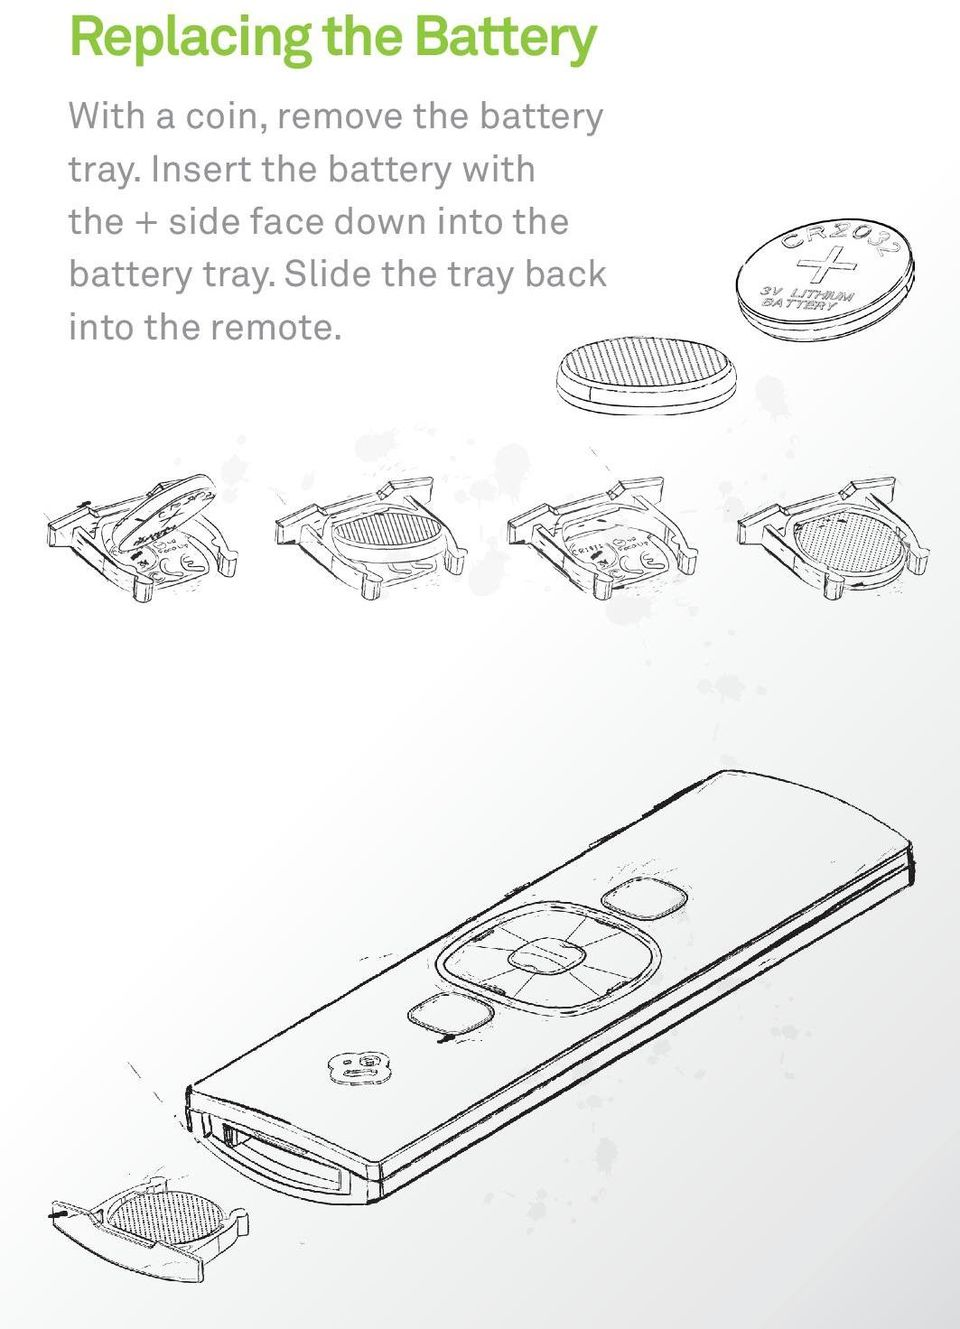 Insert the battery with the + side face